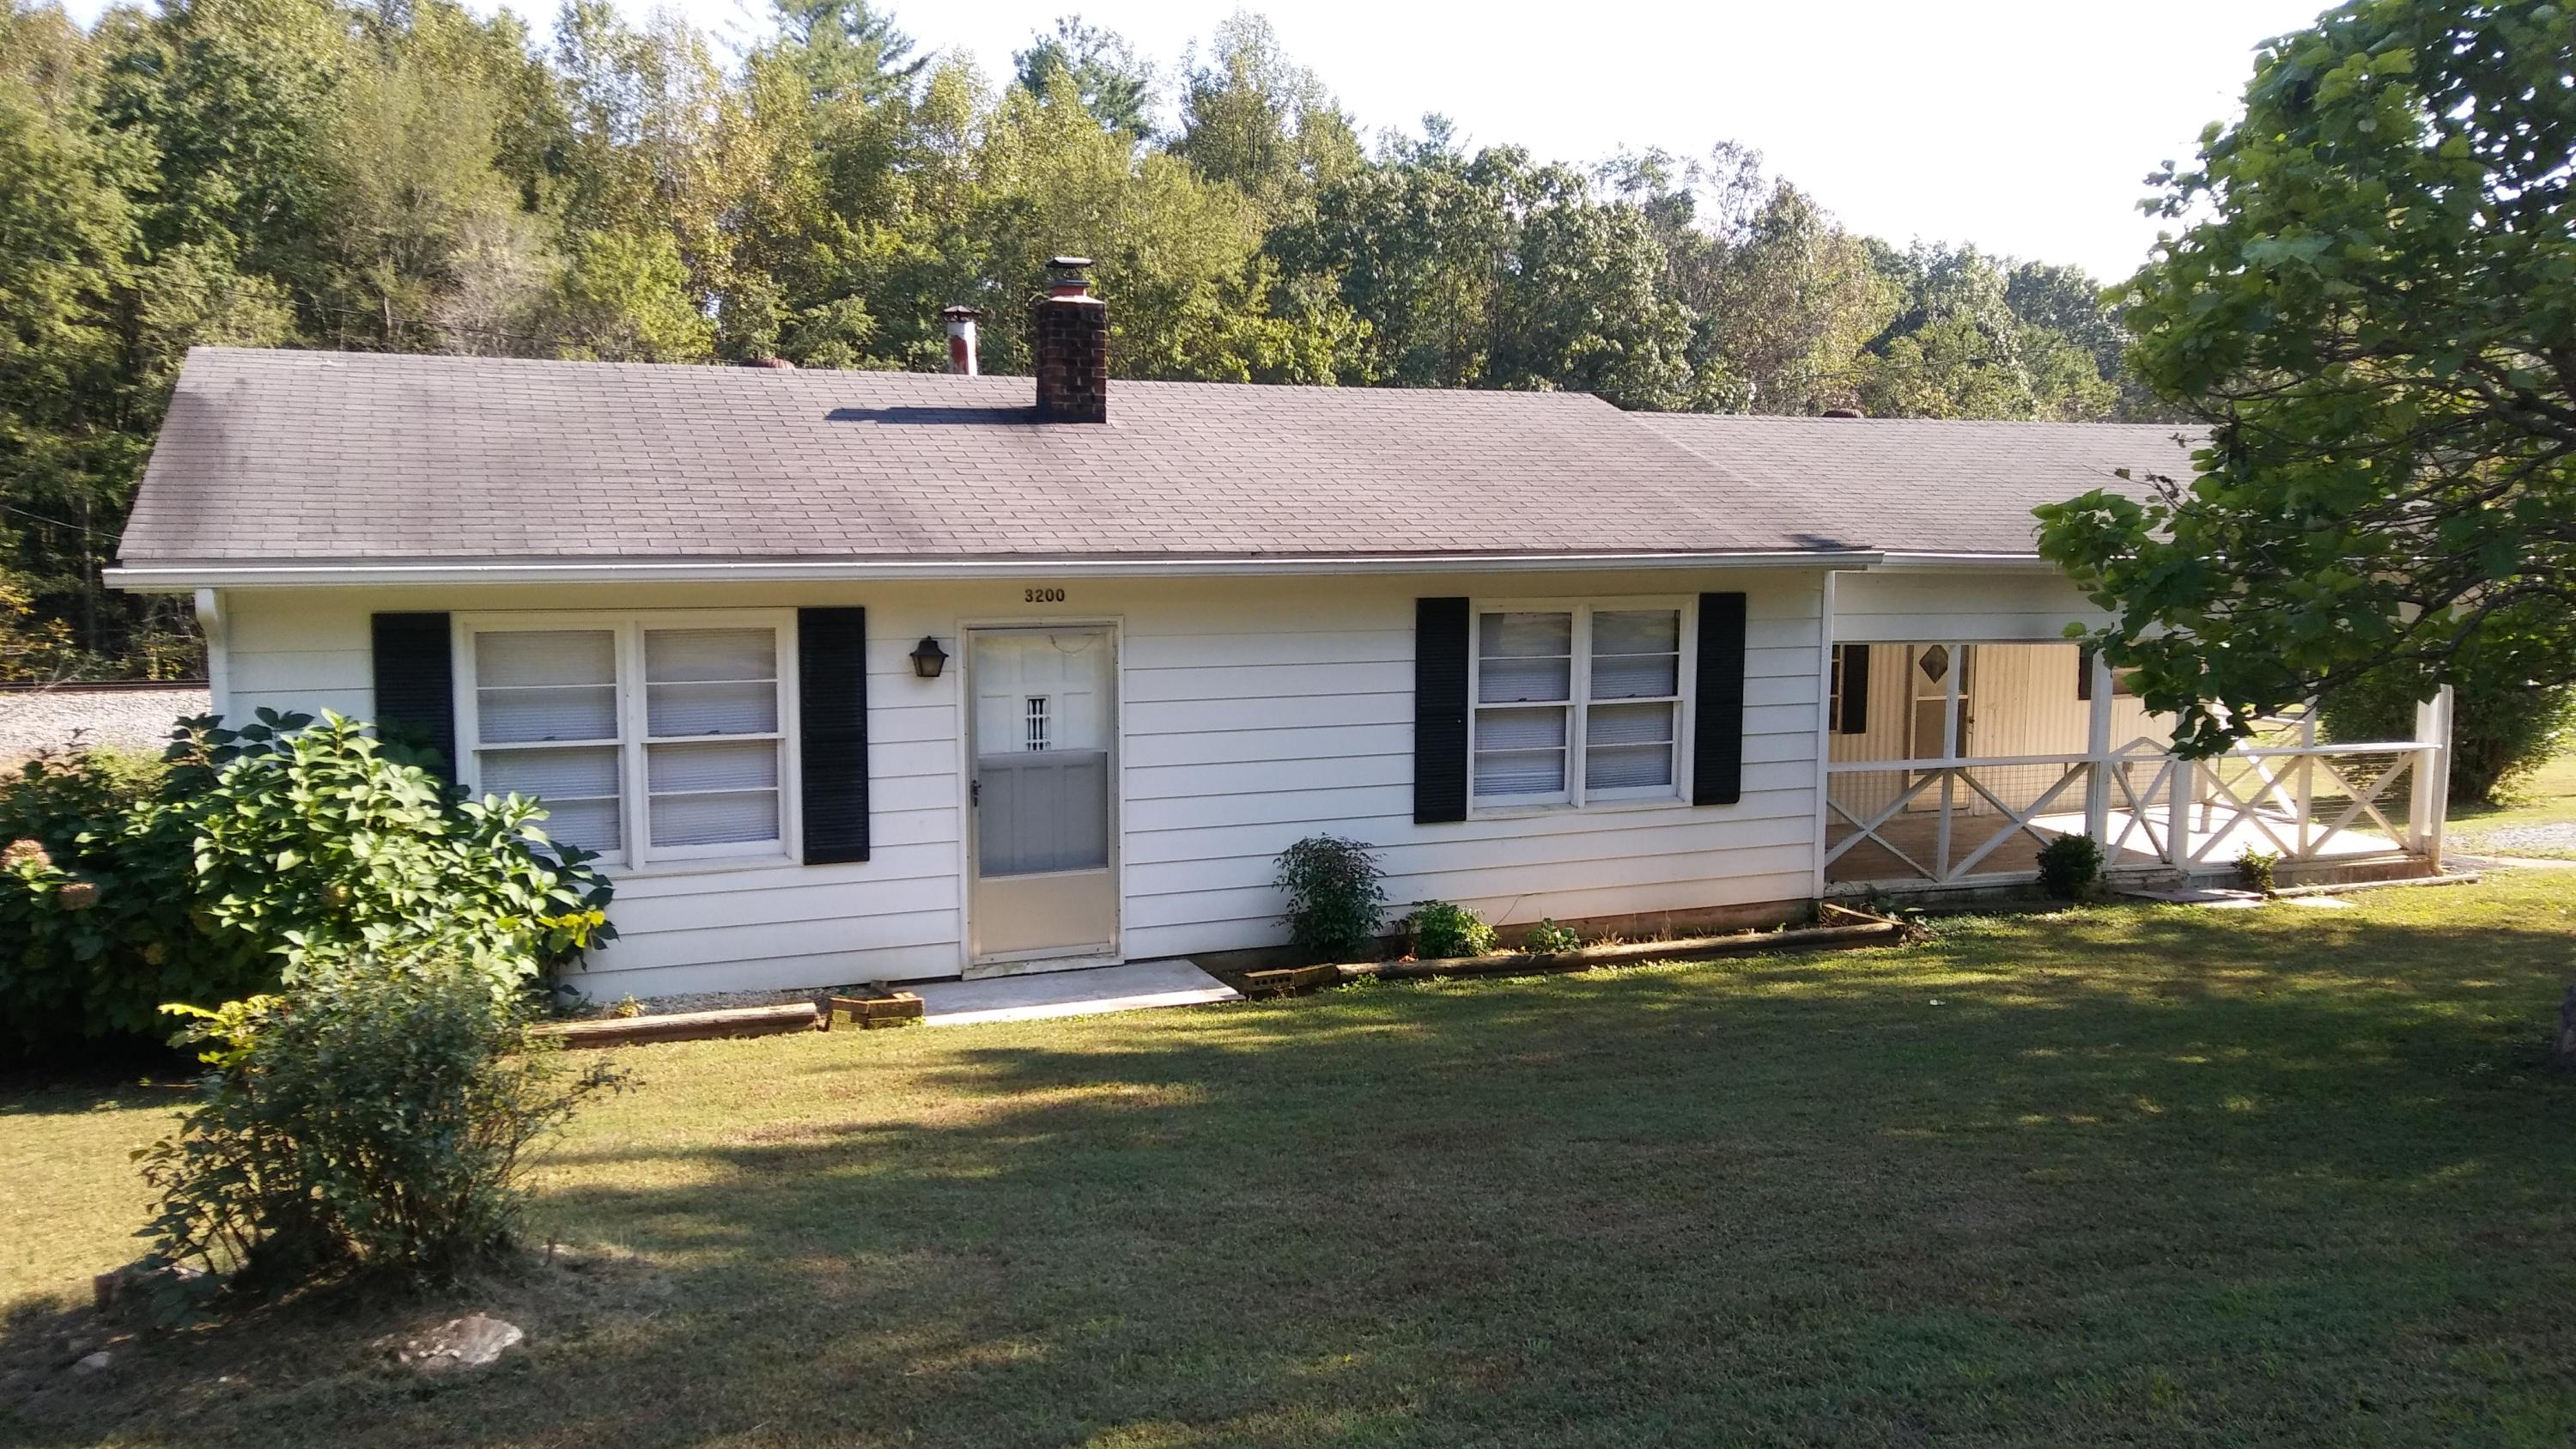 Photo of 3200 Old Ferrum RD Ferrum VA 24088